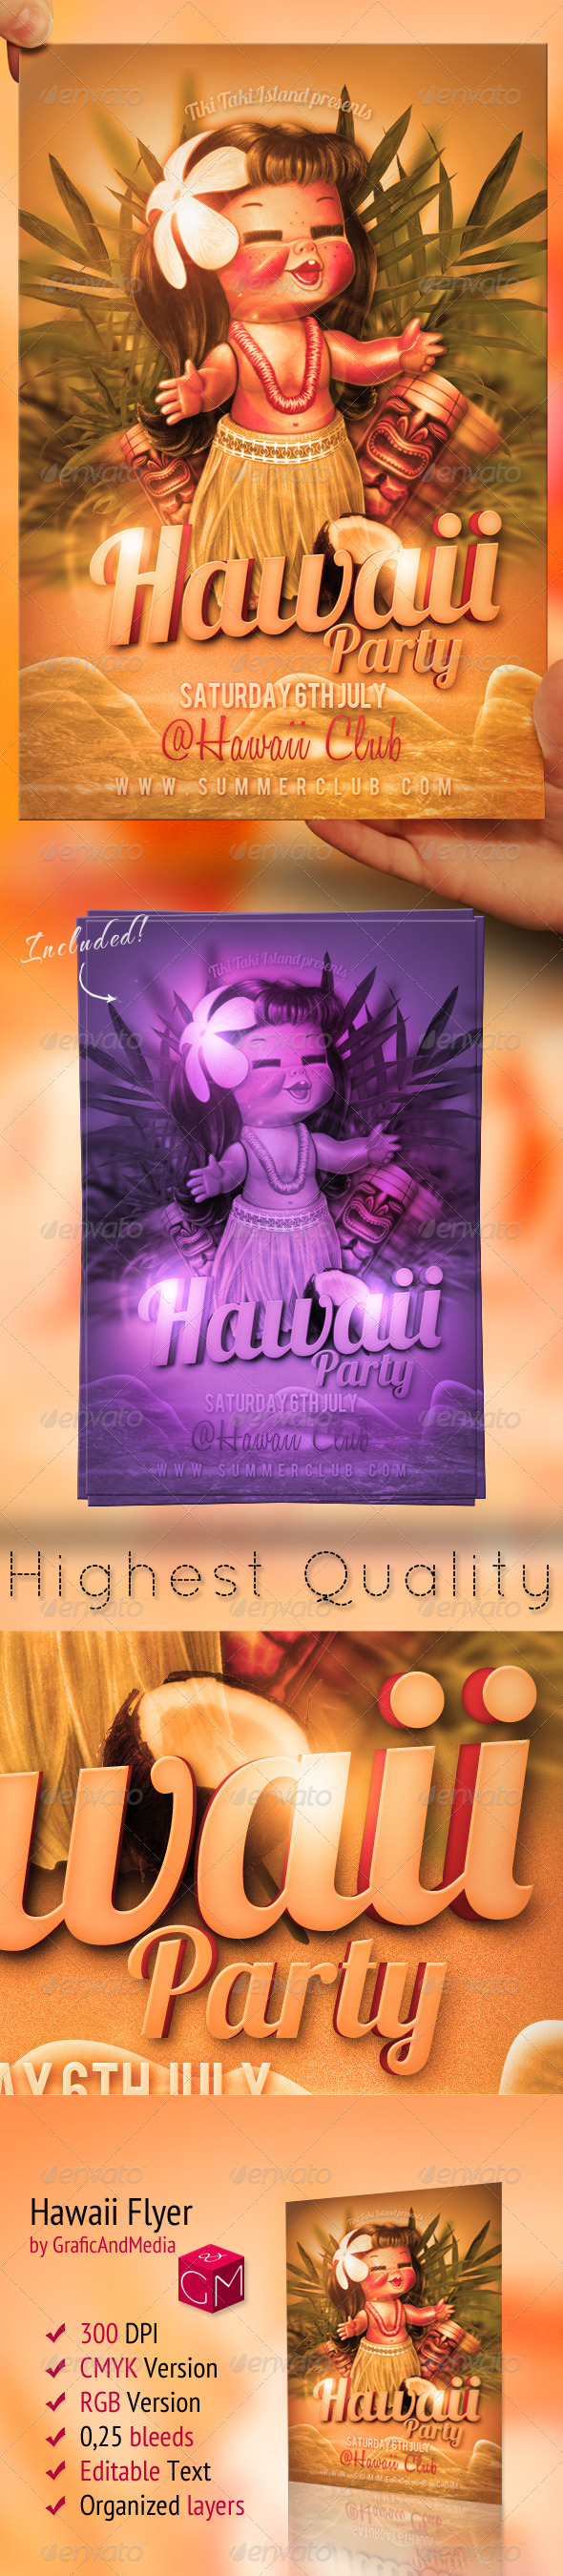 Hawaii Flyer Template - Clubs & Parties Events